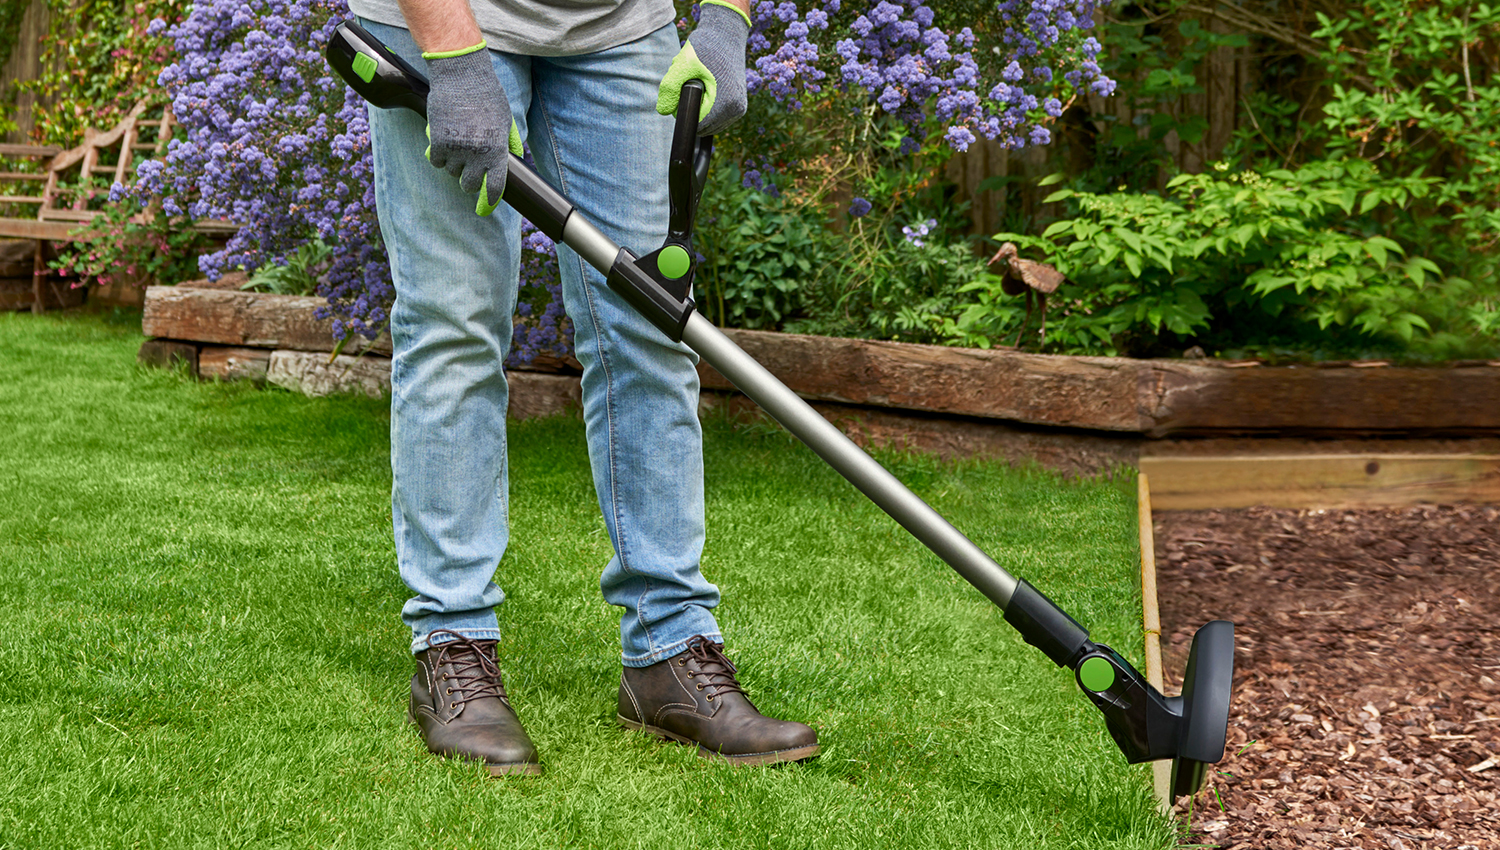 Garden Products to Keep Your Garden Looking Fantastic